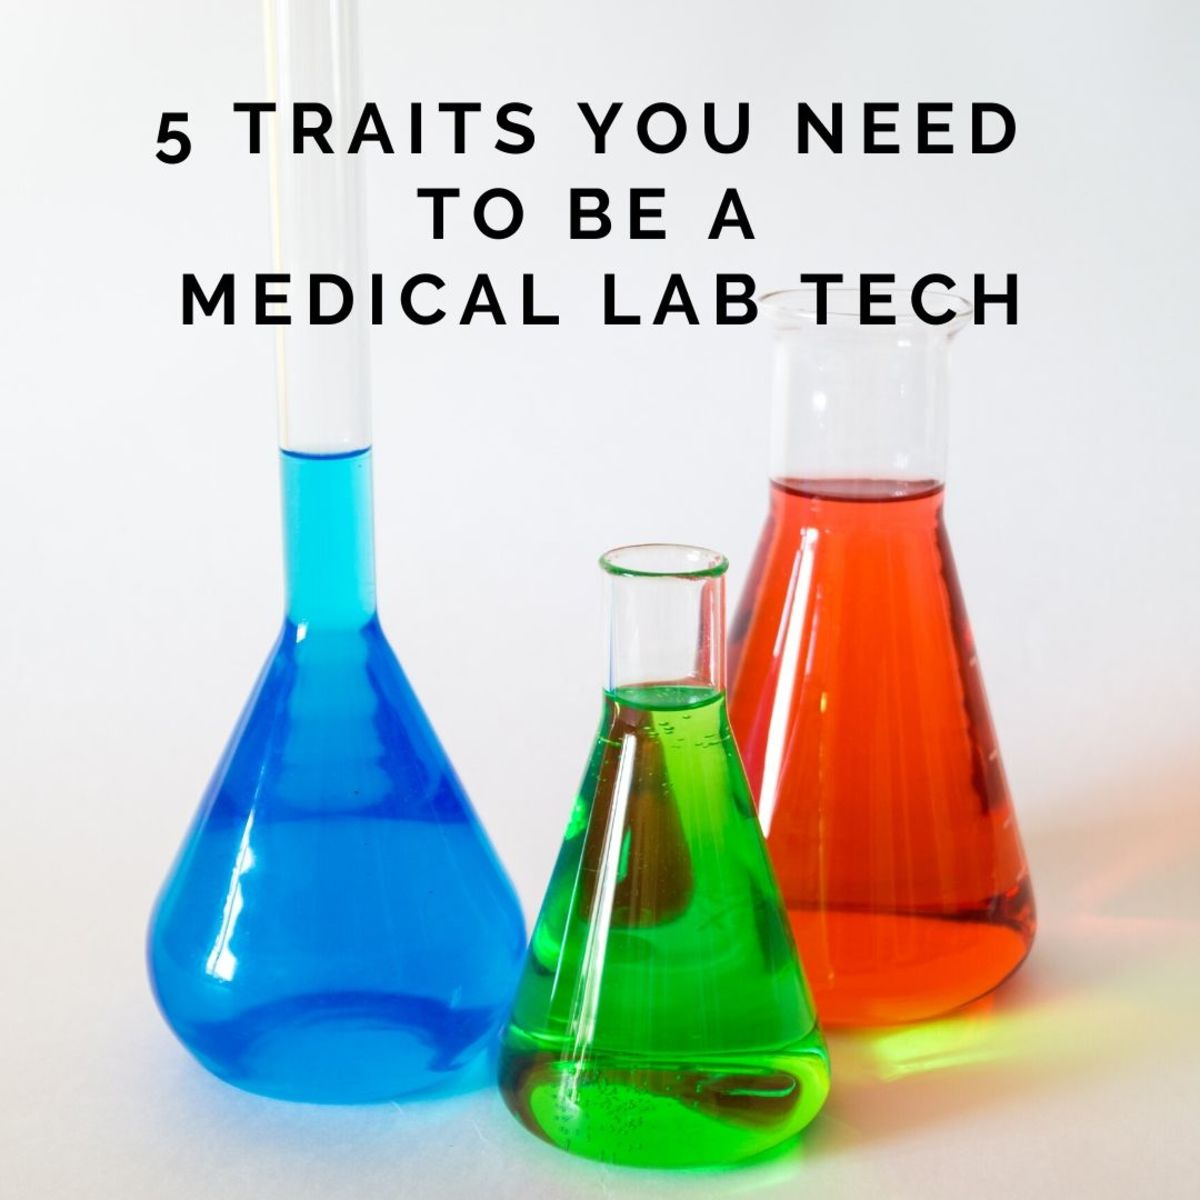 5 Qualities You Must Have to Become a Medical Laboratory Technologist